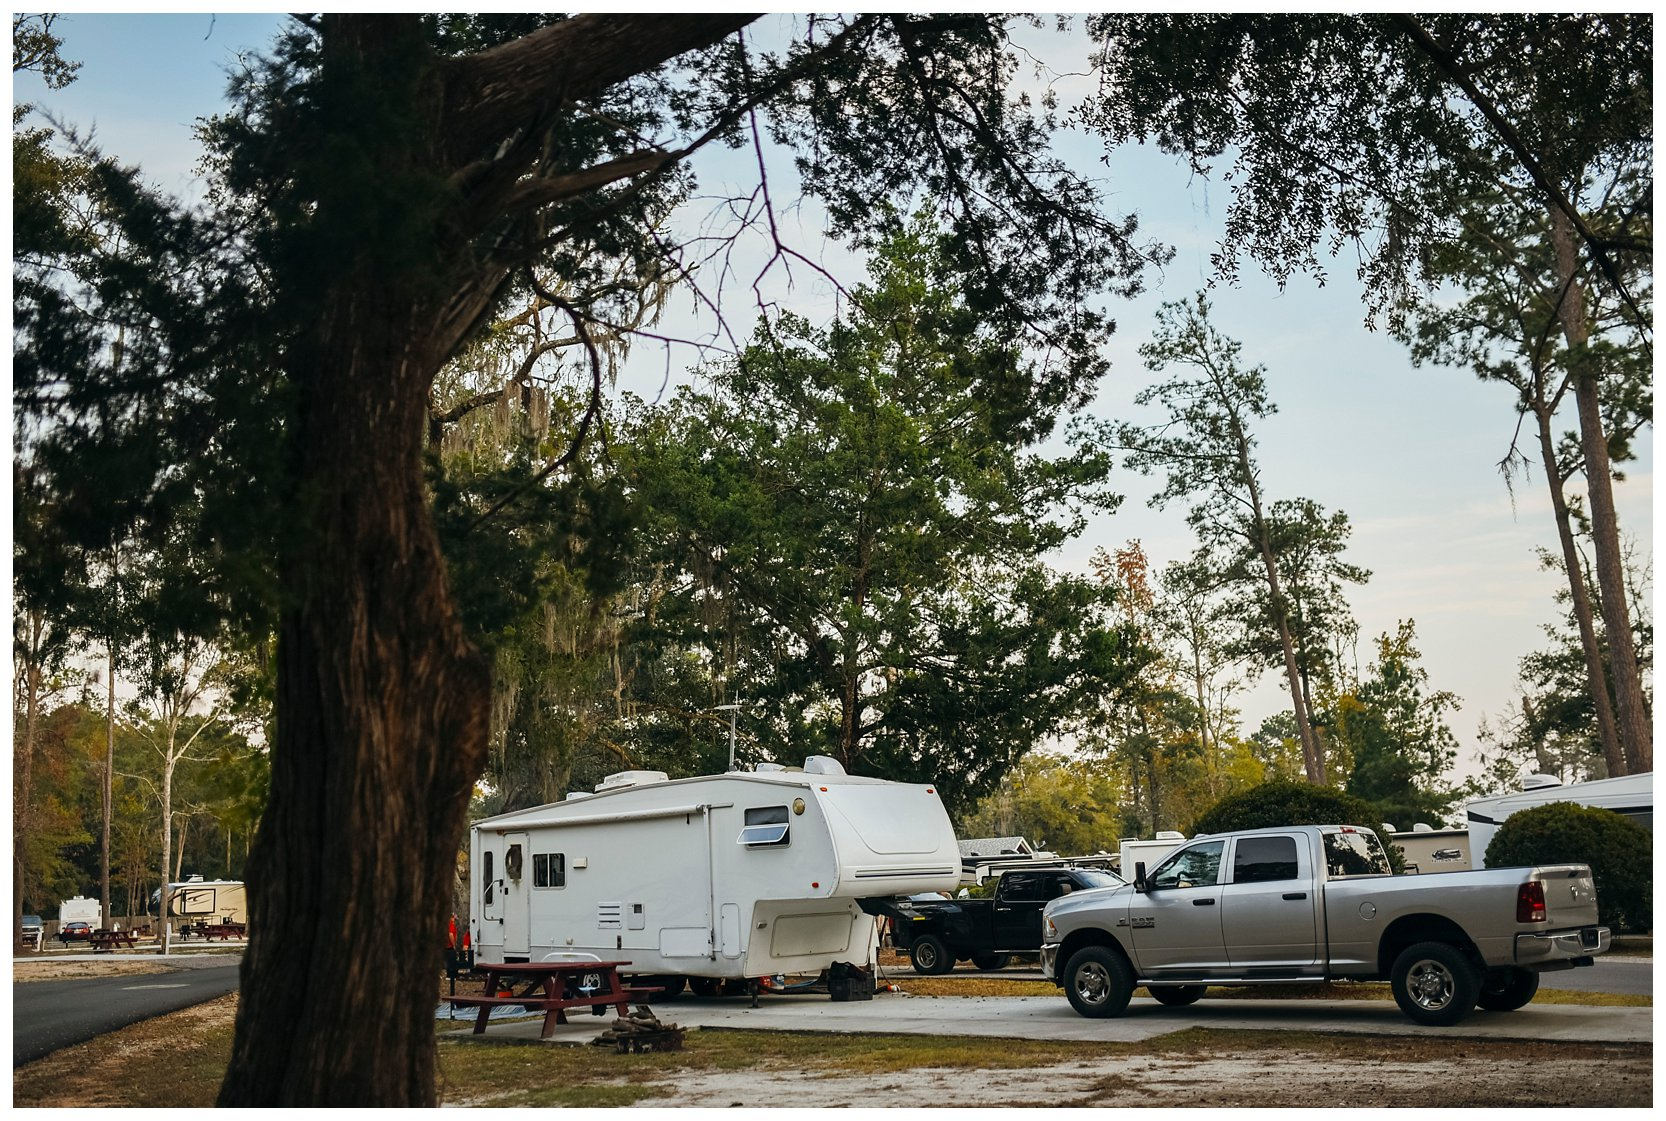 A fifth wheel camper parked at Live Oak Landing